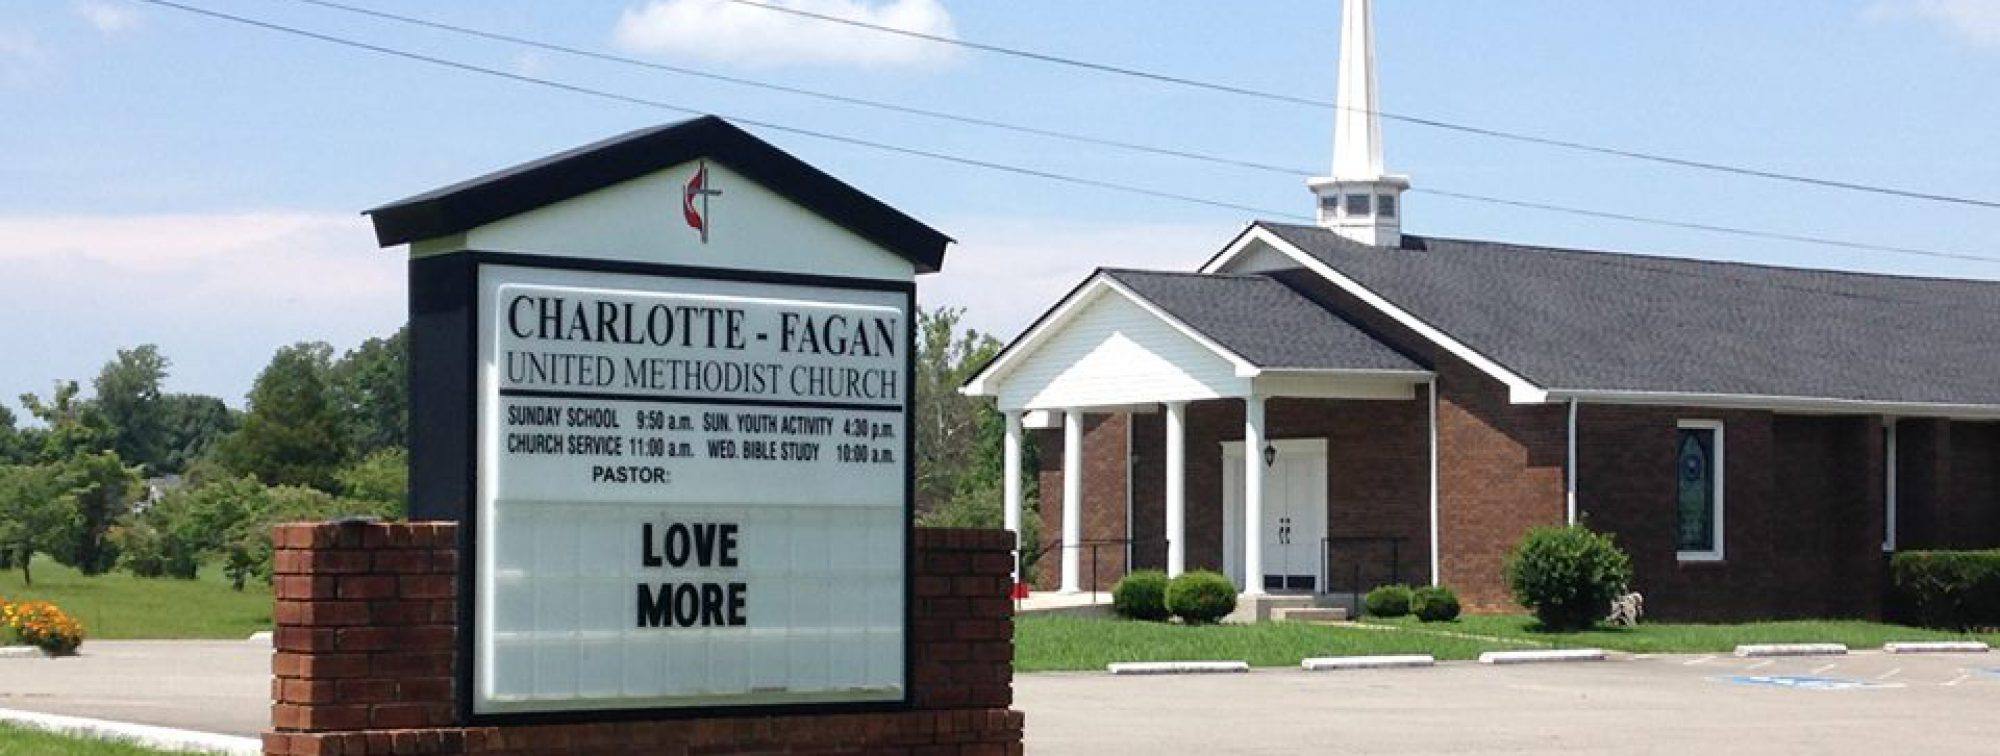 Charlotte-Fagan United Methodist Church